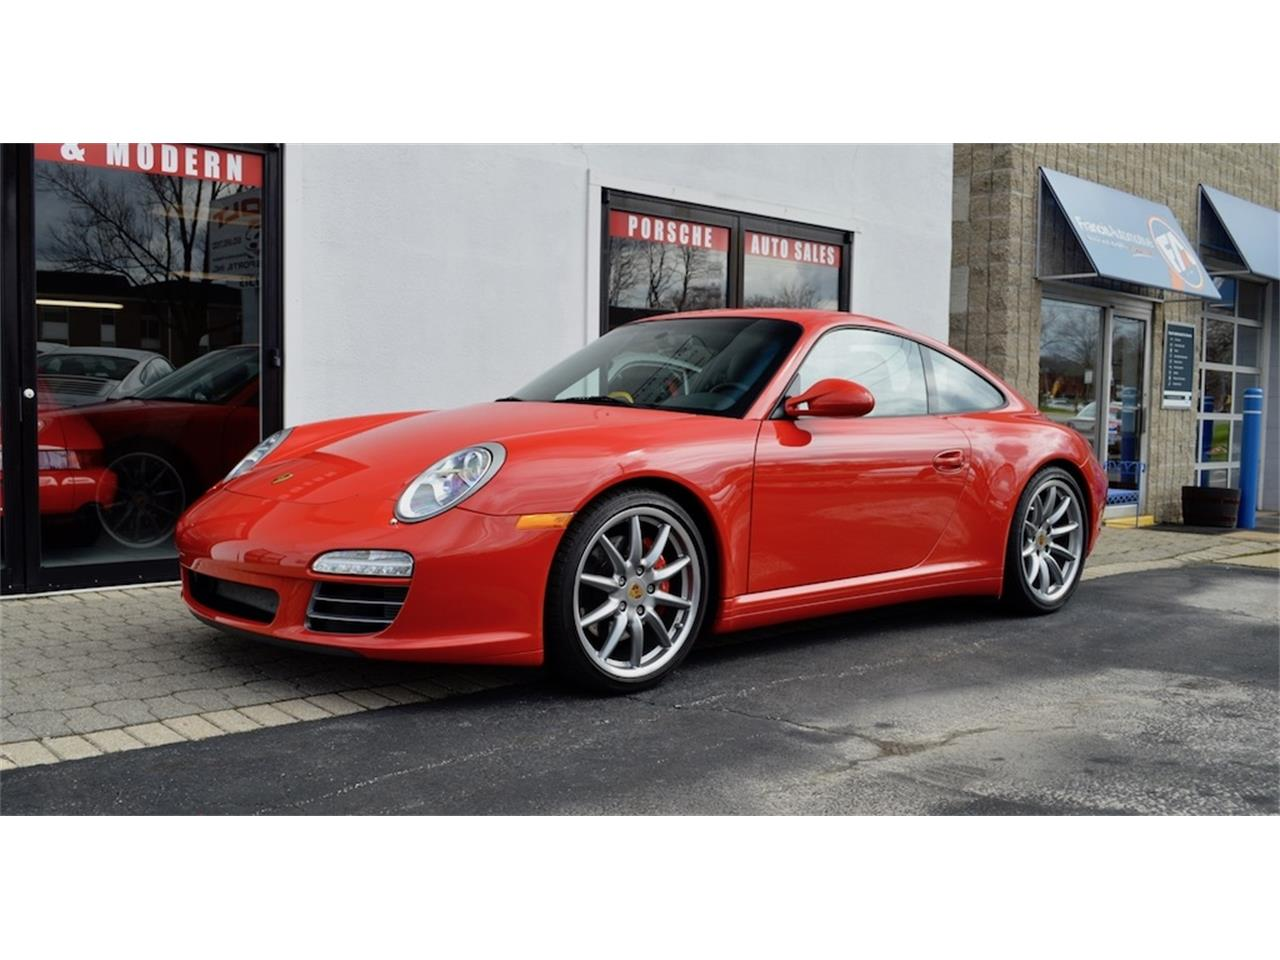 2011 Porsche 911 Carrera 4S for sale in West Chester, PA